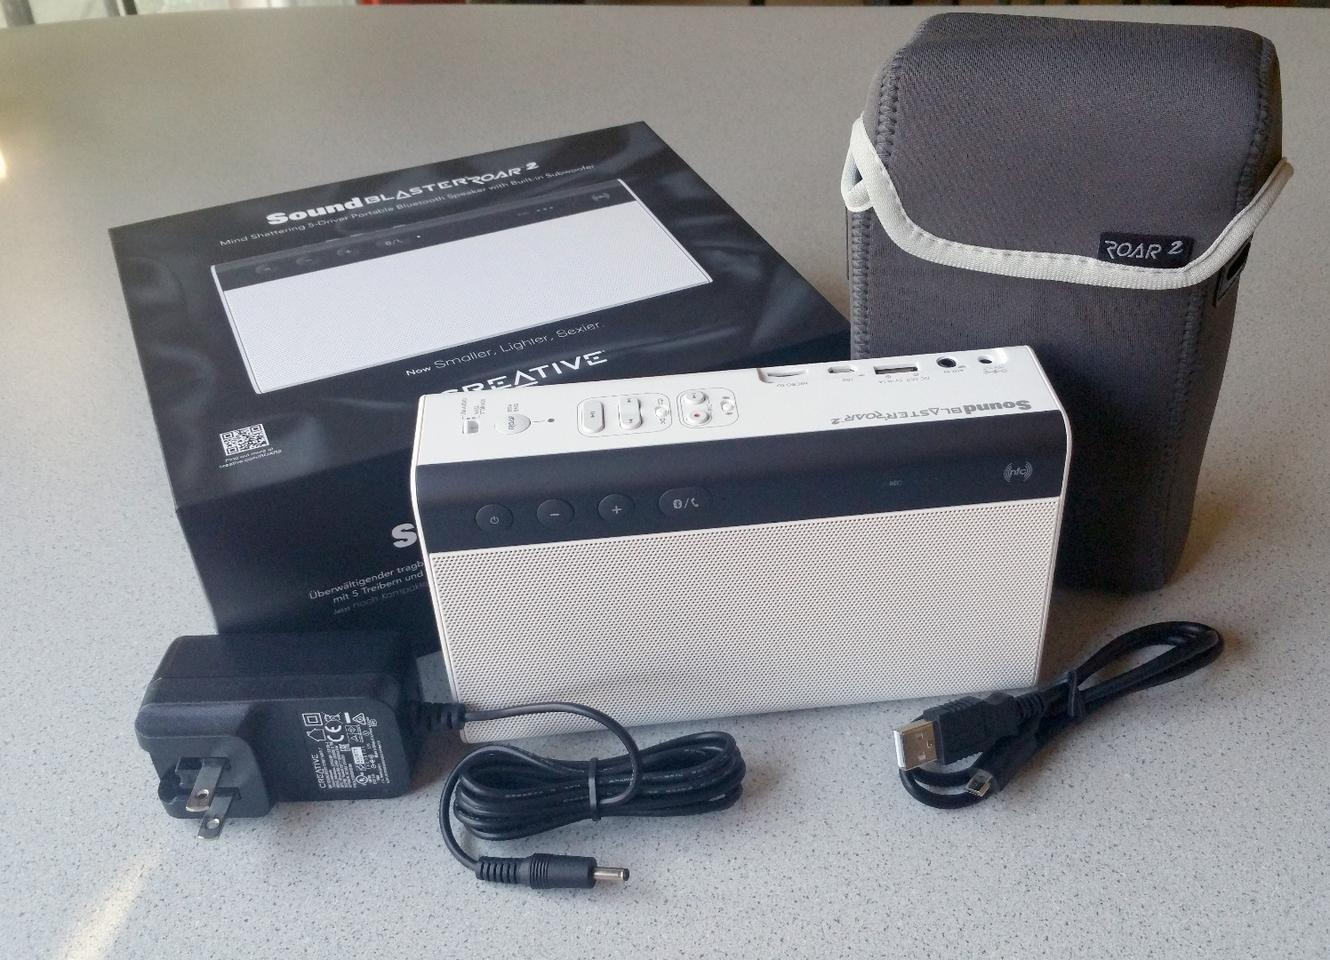 Creative Labs keeps it simple, including only wall adapter and USB cable with the Sound Blaster Roar 2 speaker (carrying case sold separately)